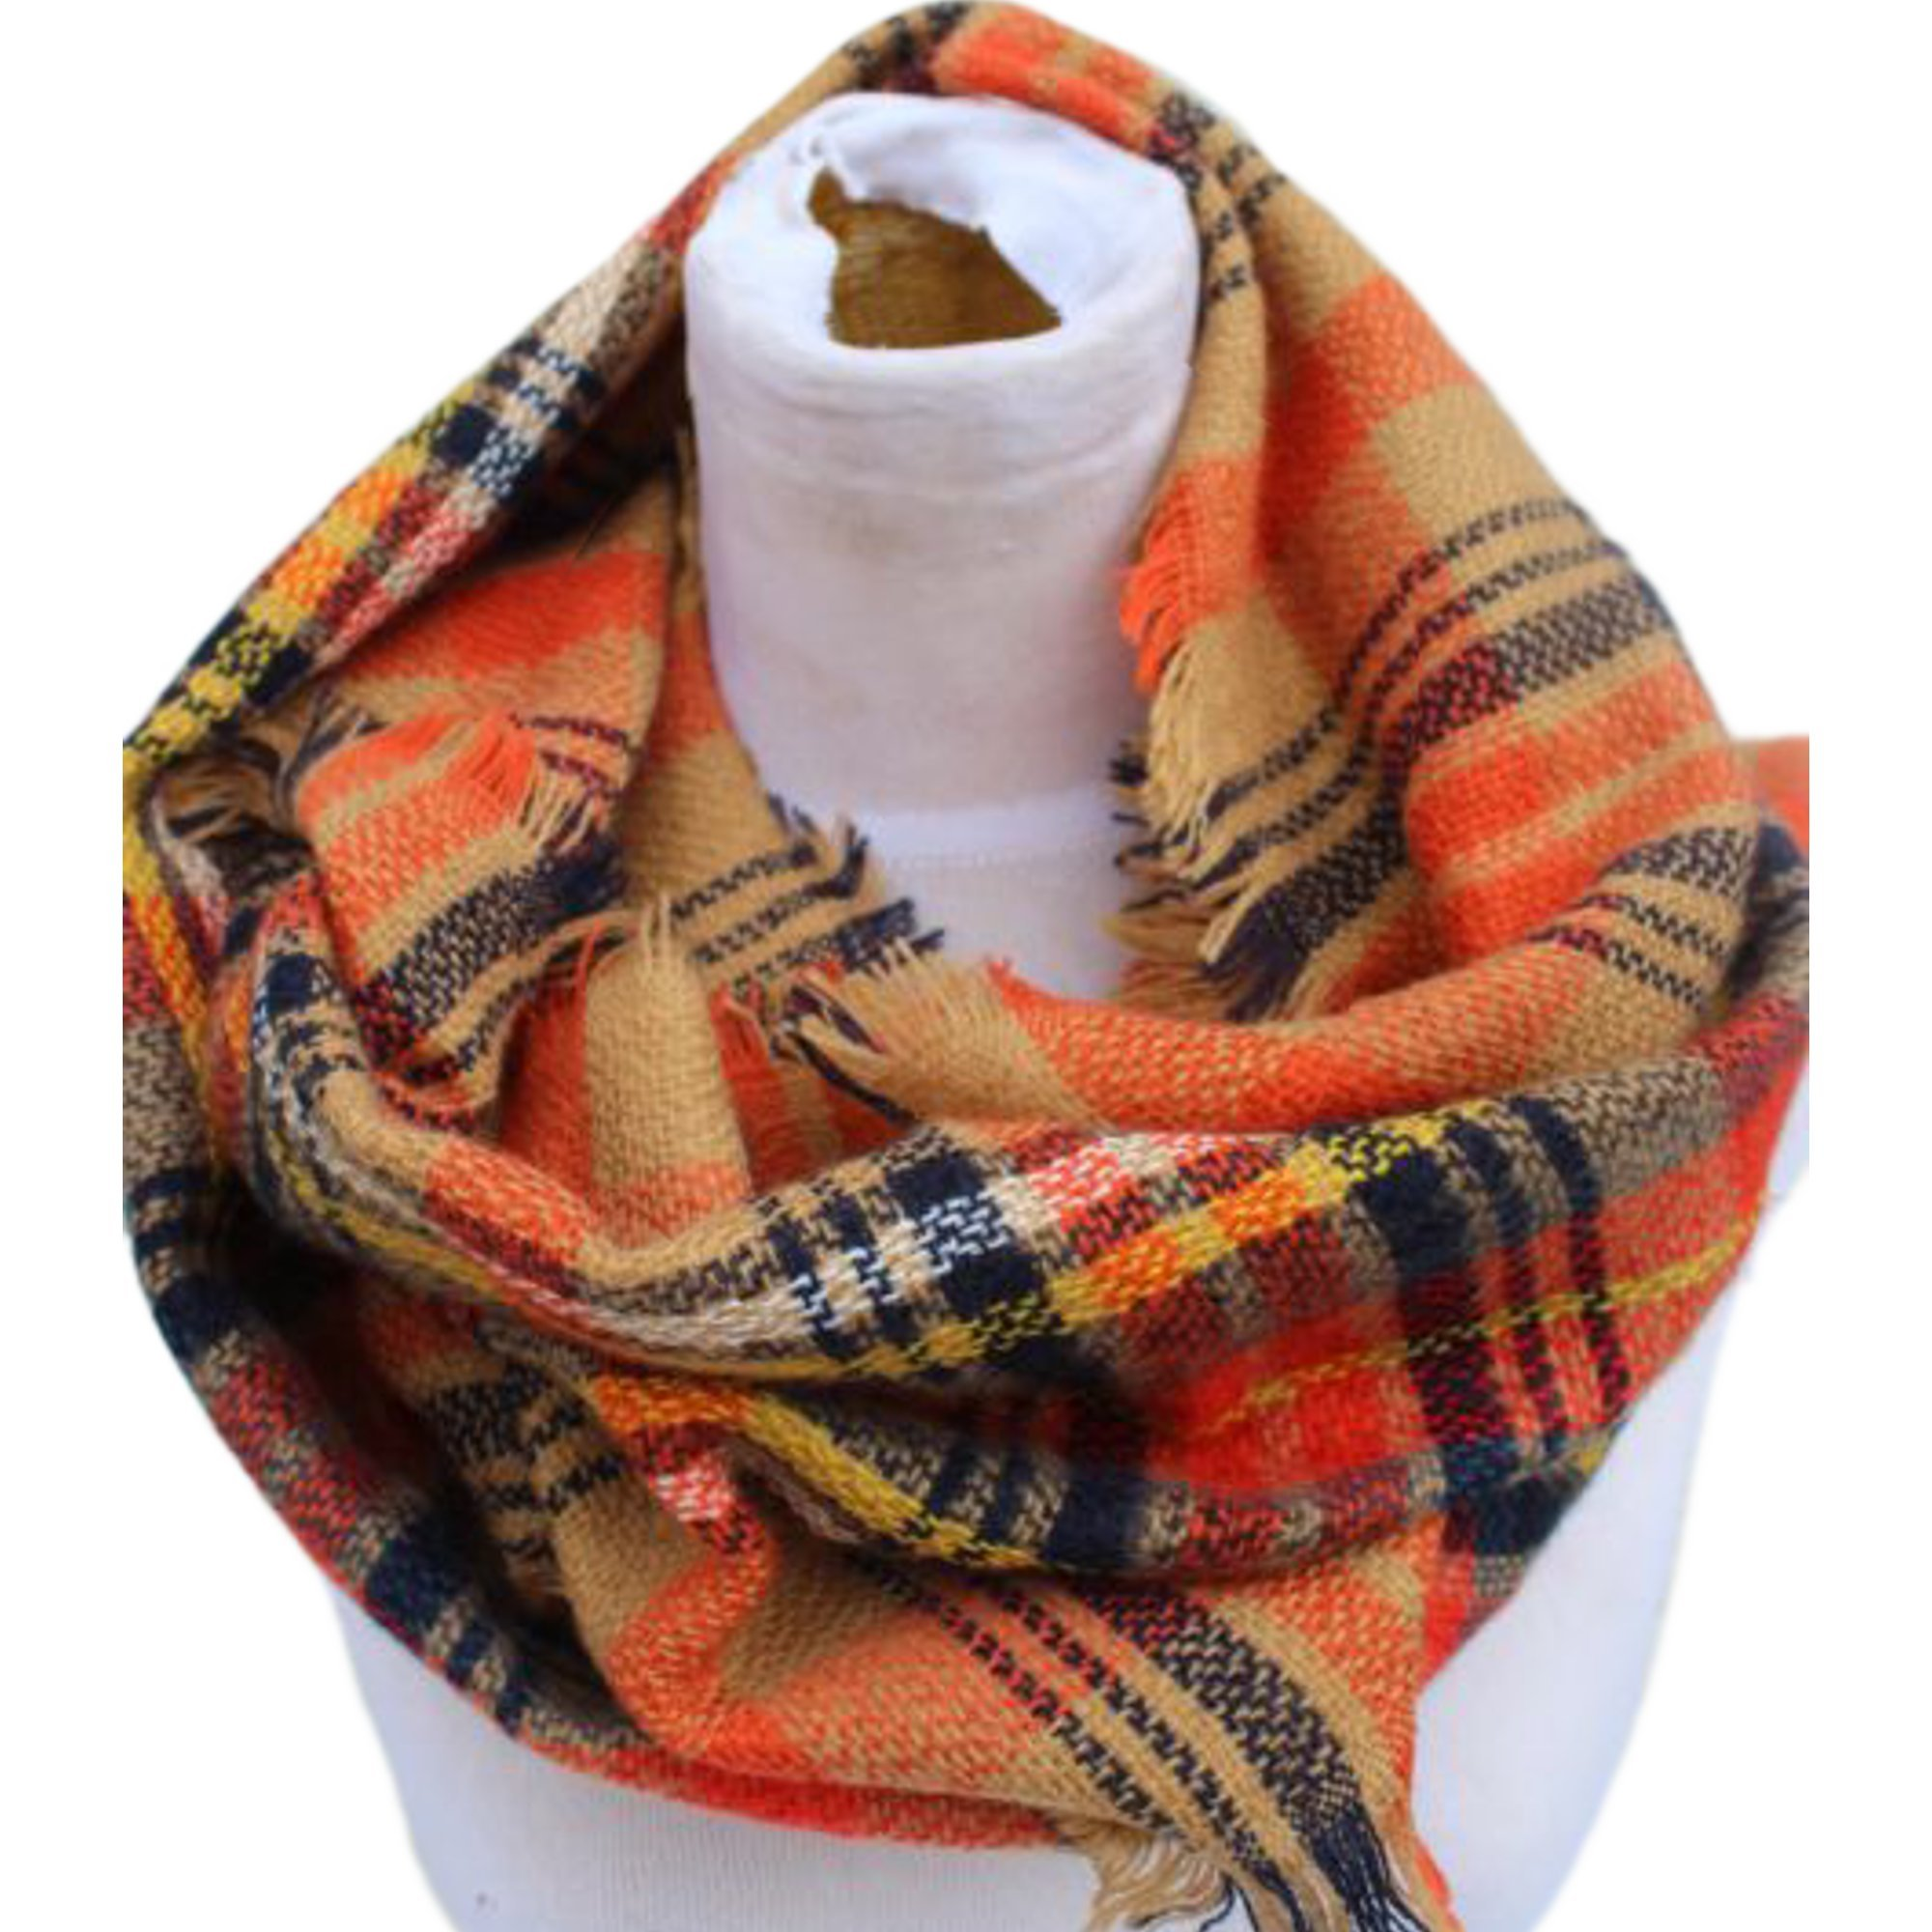 Epic Brand Infinity Scarf Collection for Men and Women | Comfortable Plaid Tartan Cashmere Blanket Circle Winter Scarves (Plaid Orange/Navy Blue)